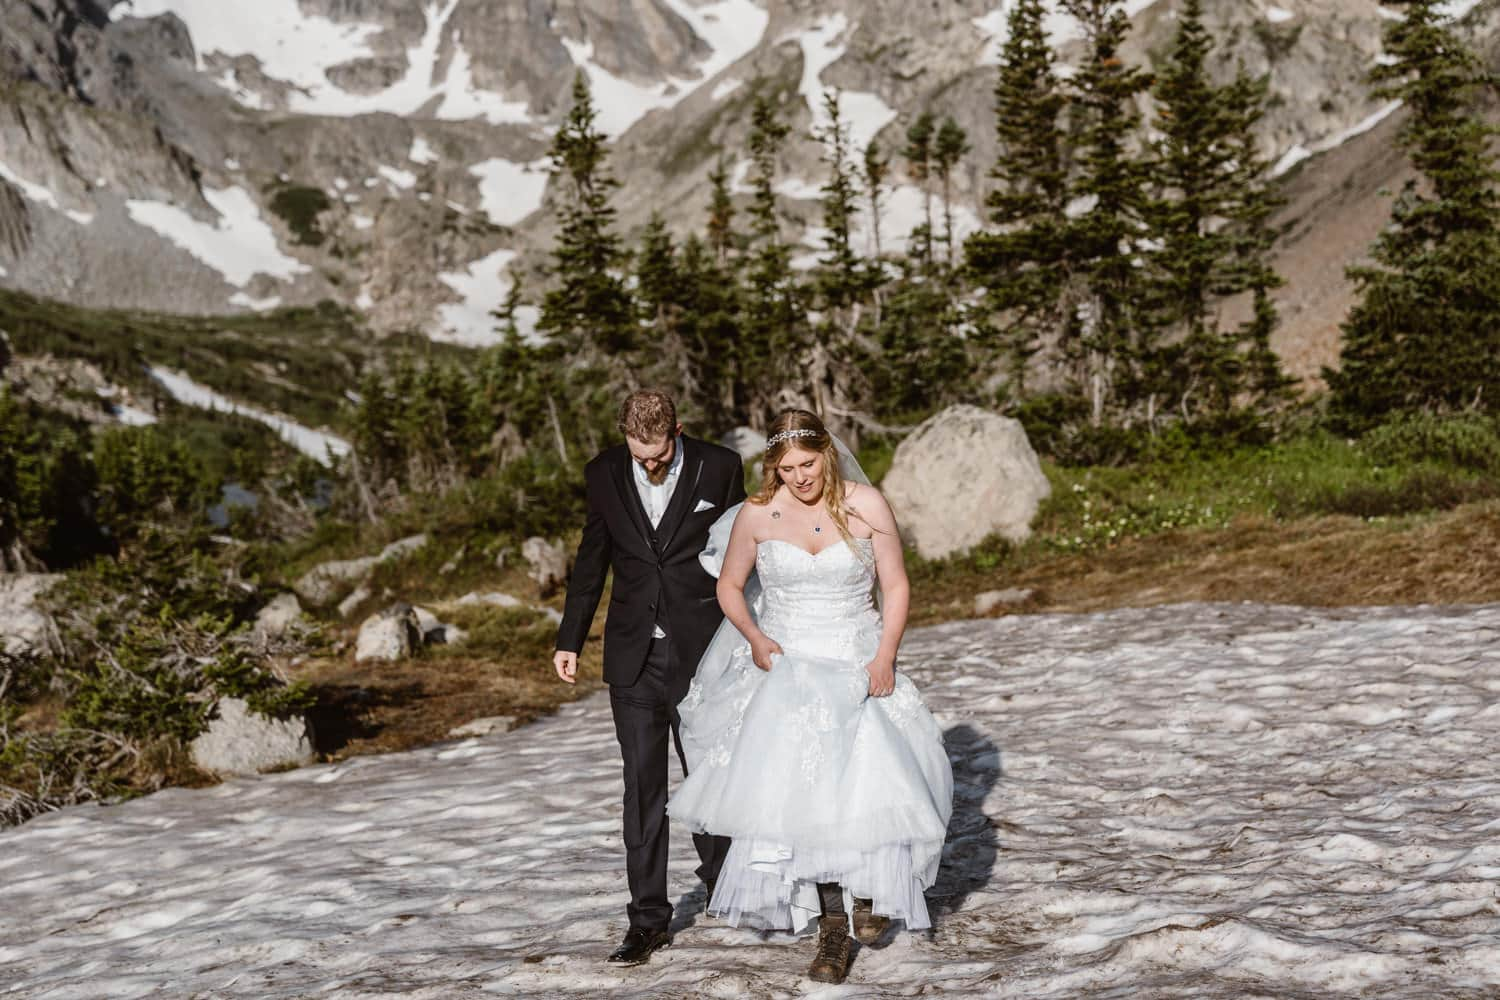 Elopement Definition Bride and Groom Hiking Colorado